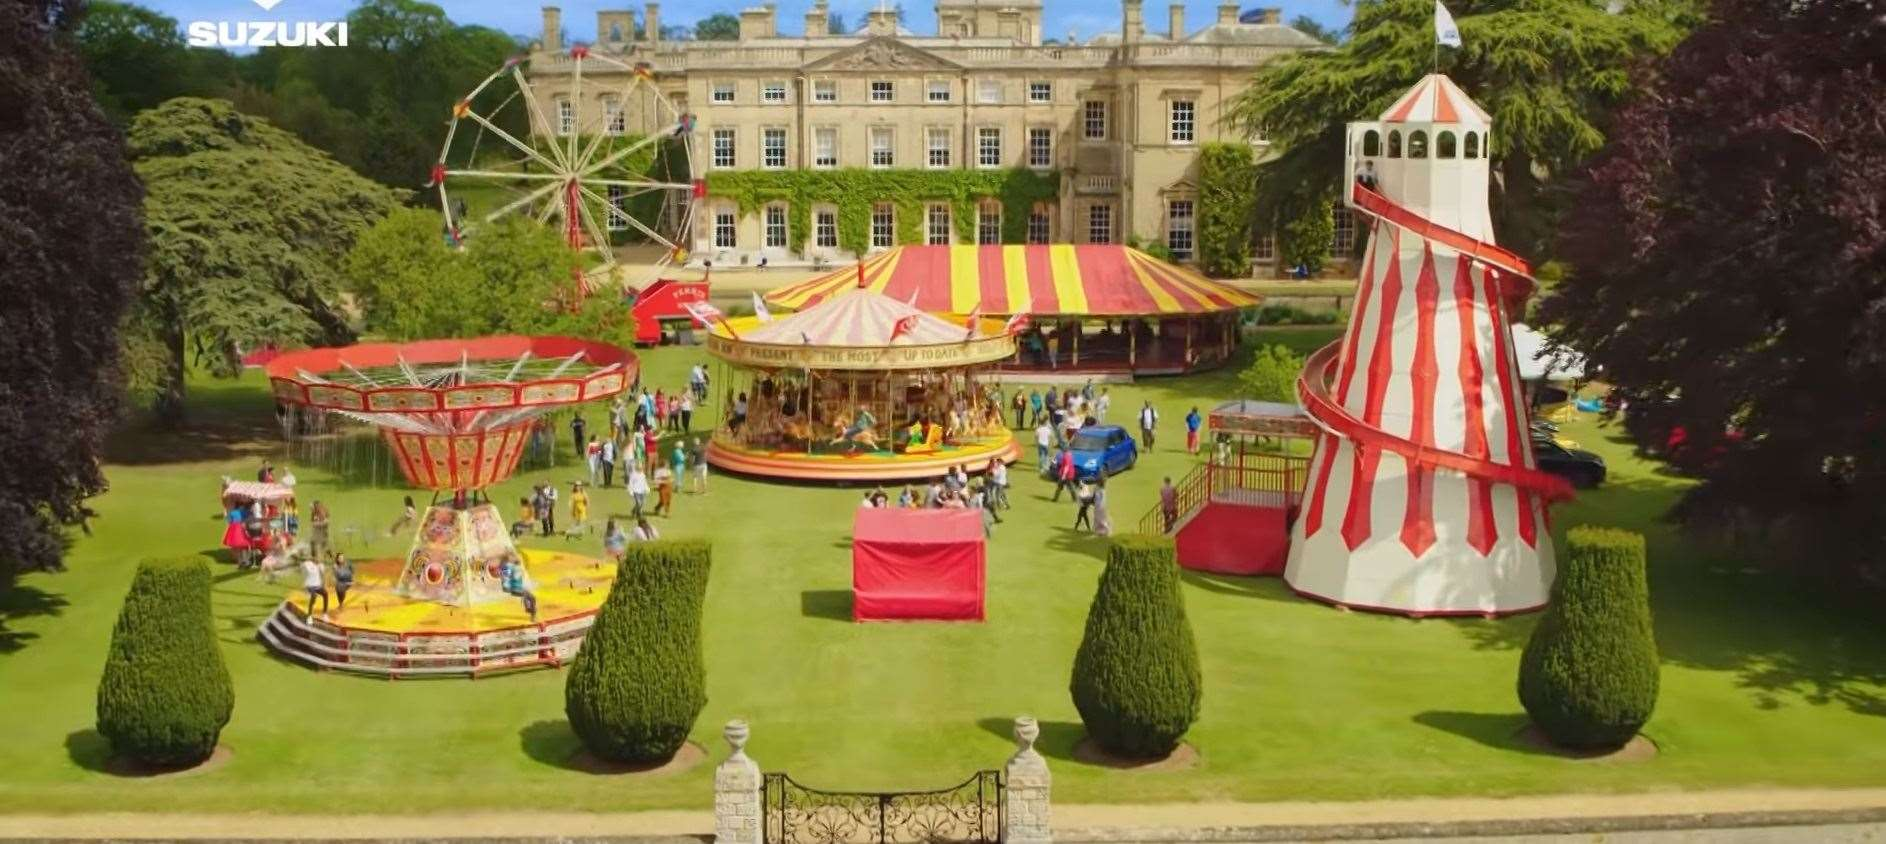 Part of the grounds at Culford School were transformed into a fun fair	Pictures by Suzuki.